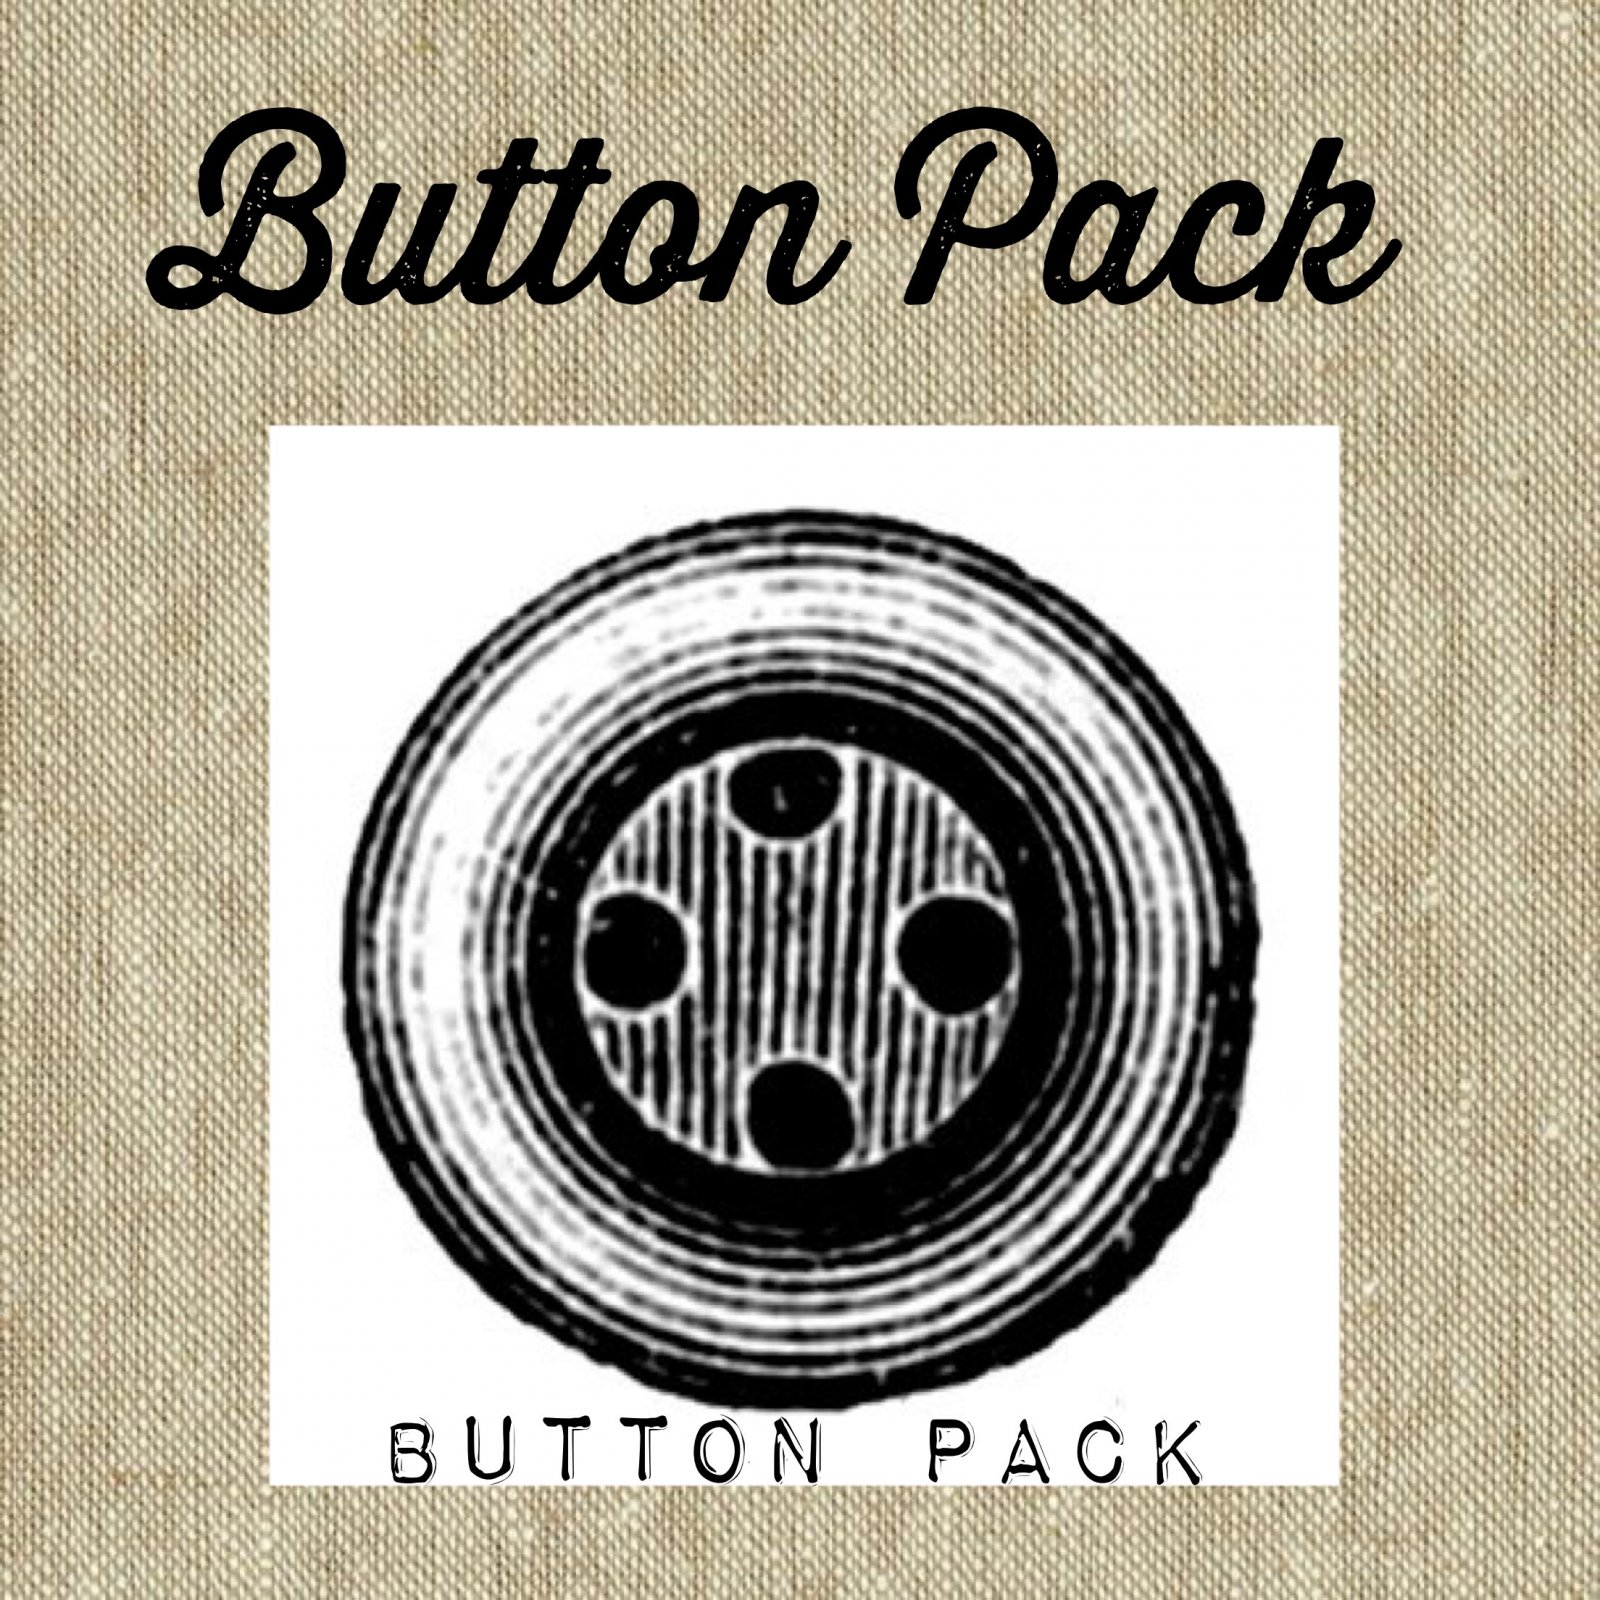 Buttermilk Basin's Vintage Vibe * You're Cut Out To Be Mine Button Pack